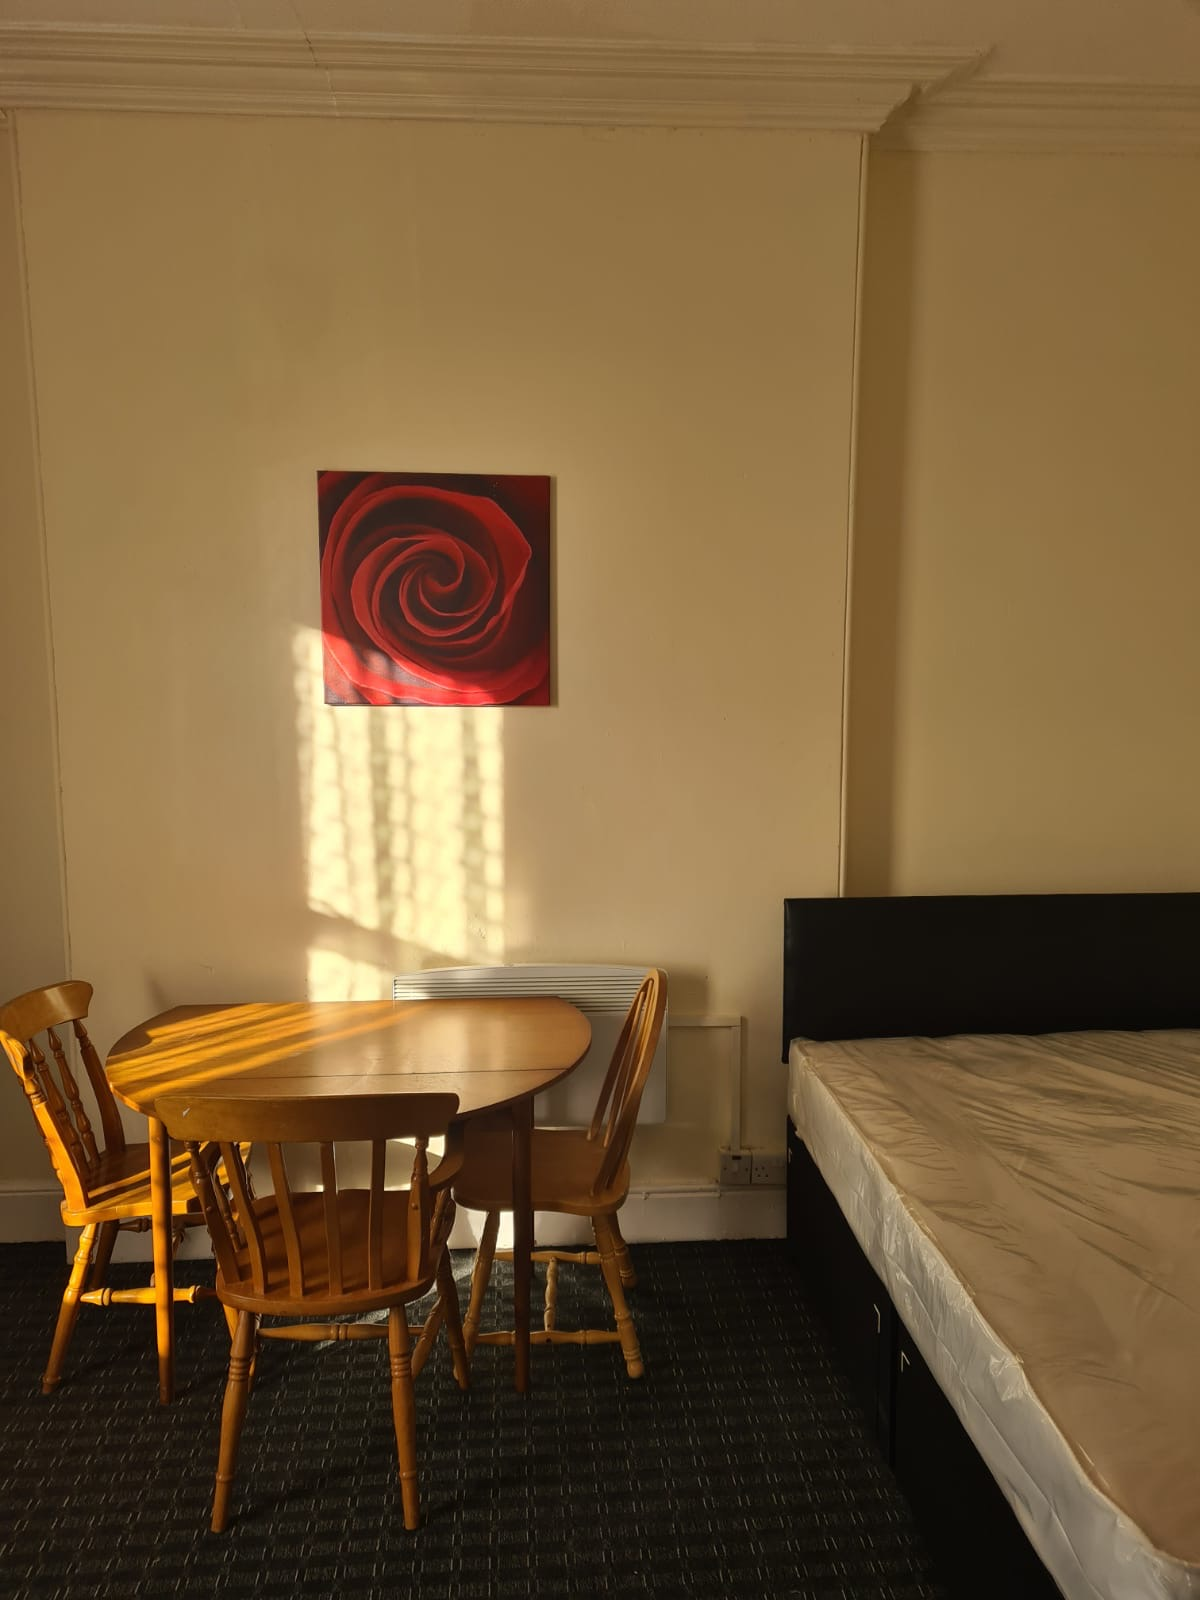 FULLY FURNISHED FIRST FLOOR STUDIO FLAT AVAILABLE, HOLYHEAD RD, HANDSWORTH, DSS ACCEPTED!!